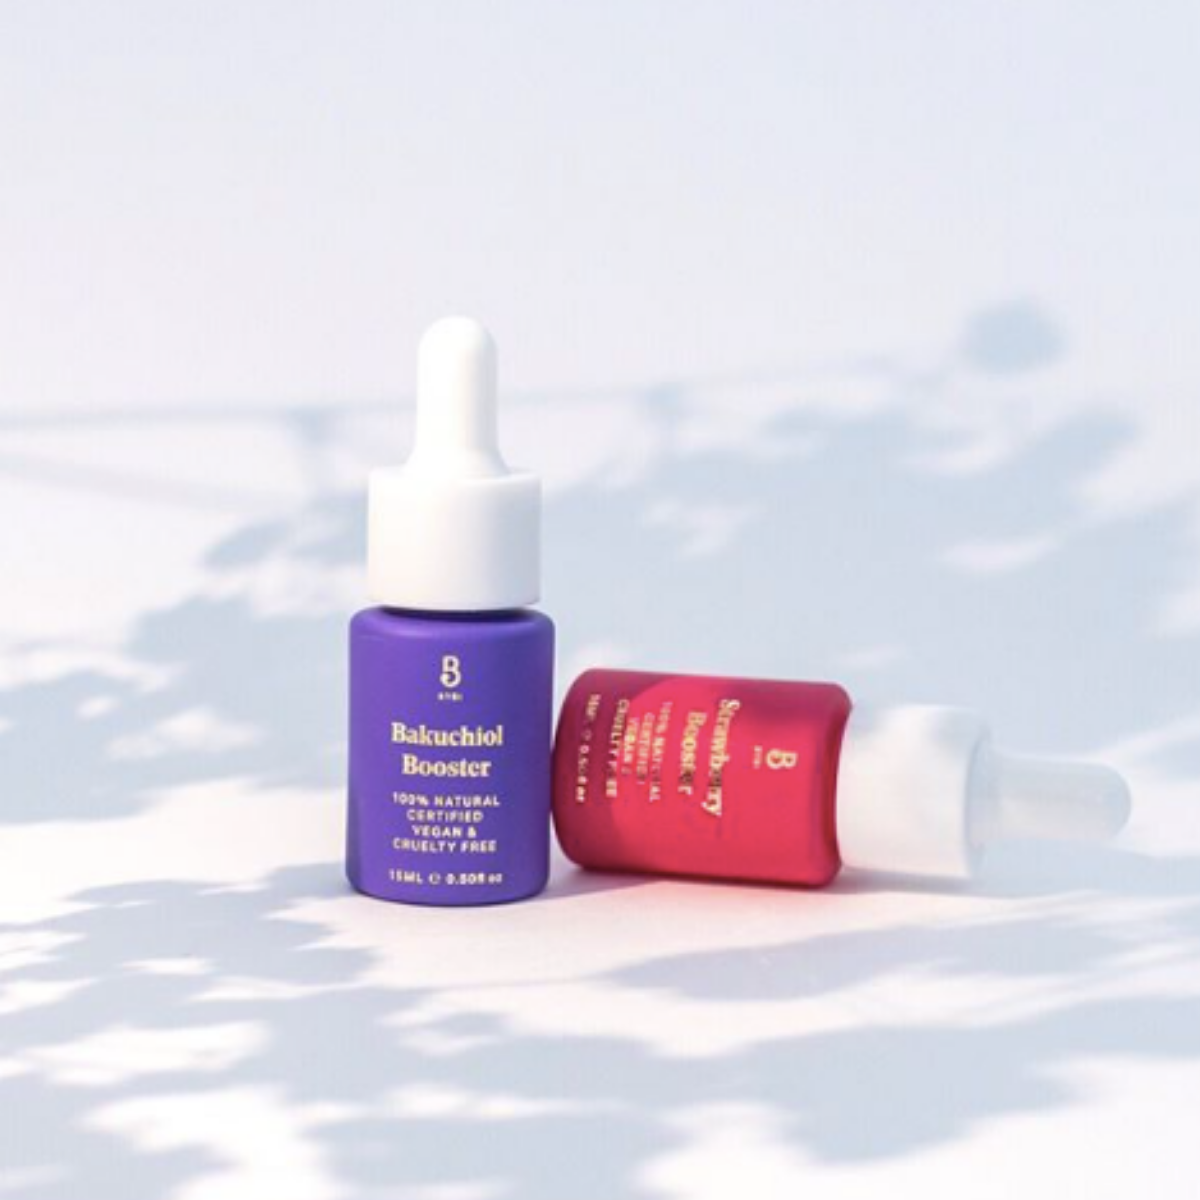 BYBI Beauty Strawberry Booster has only one ingredient, Fragaria Ananassa (Strawberry) Seed Oil. Image source:  @Bybibeauty